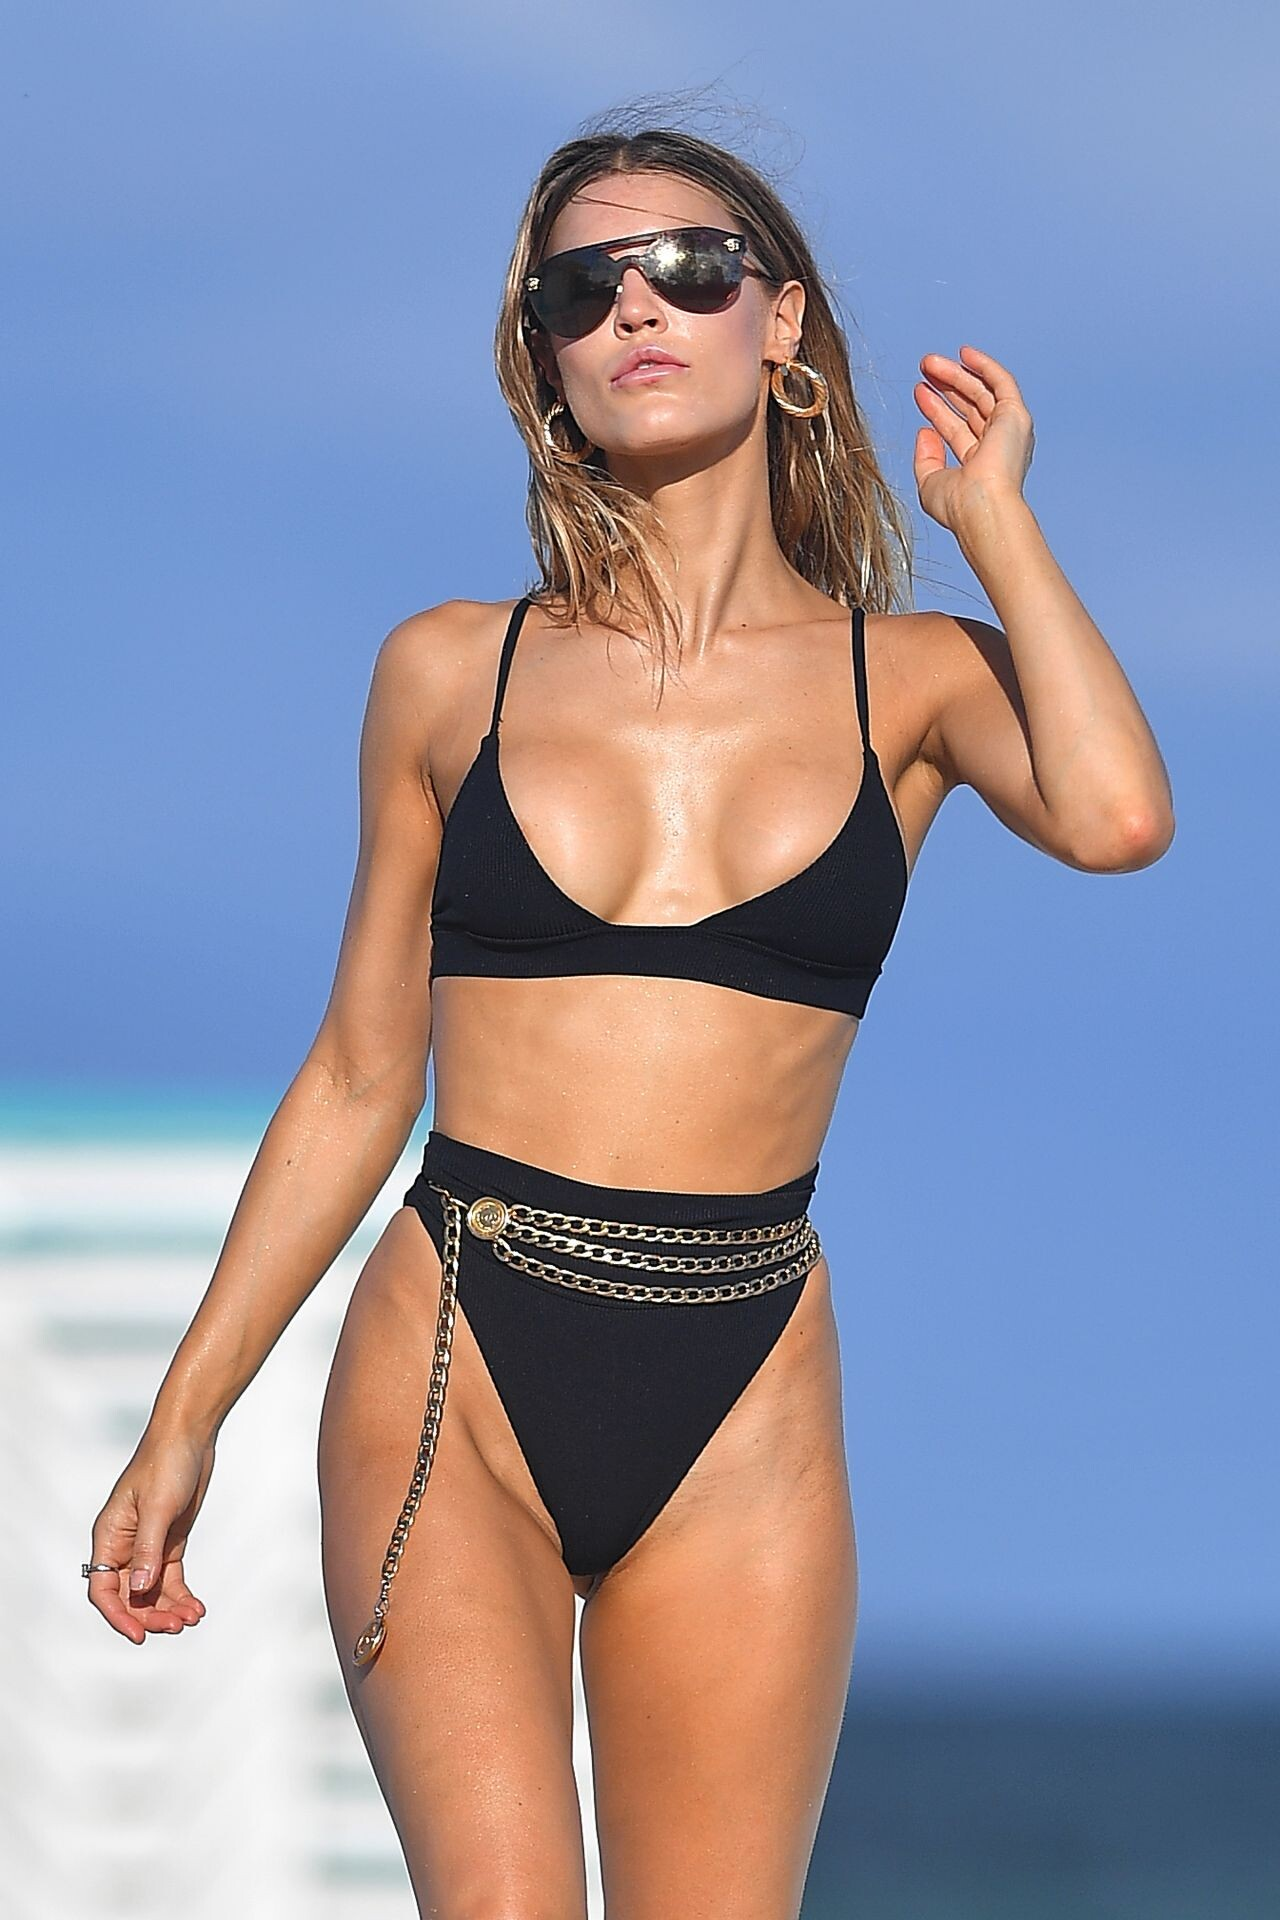 joy-corrigan-bikini-photoshoot-on-the-beach-in-miami-07-15-2019-14.jpg.101559b317ebf1e8b44c19705146cb93.jpg